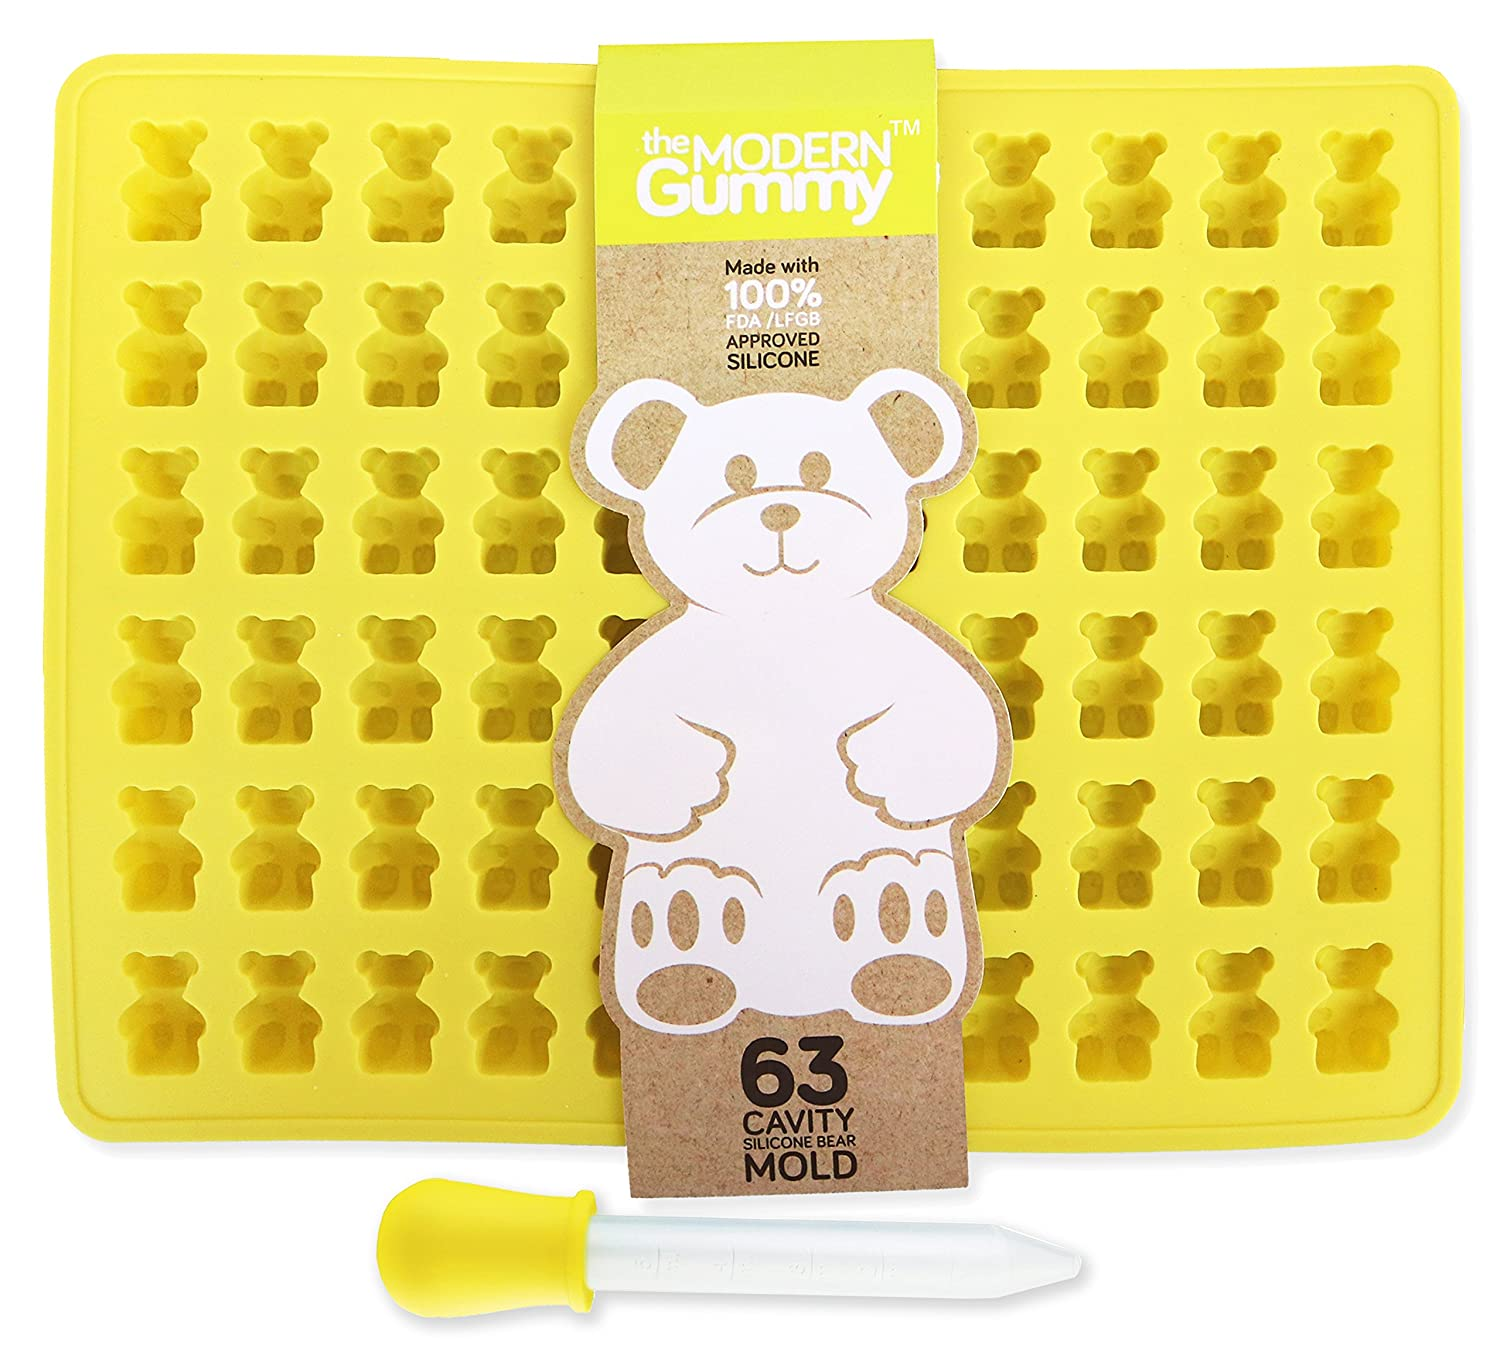 63 Cavity PURE LFGB SILICONE Gummy Bear Mold by The Modern Gummy + Dropper + Recipe PDF | No Plastic Fillers, BPA, or Chemical Coatings; Fruit Snack Candy, ...